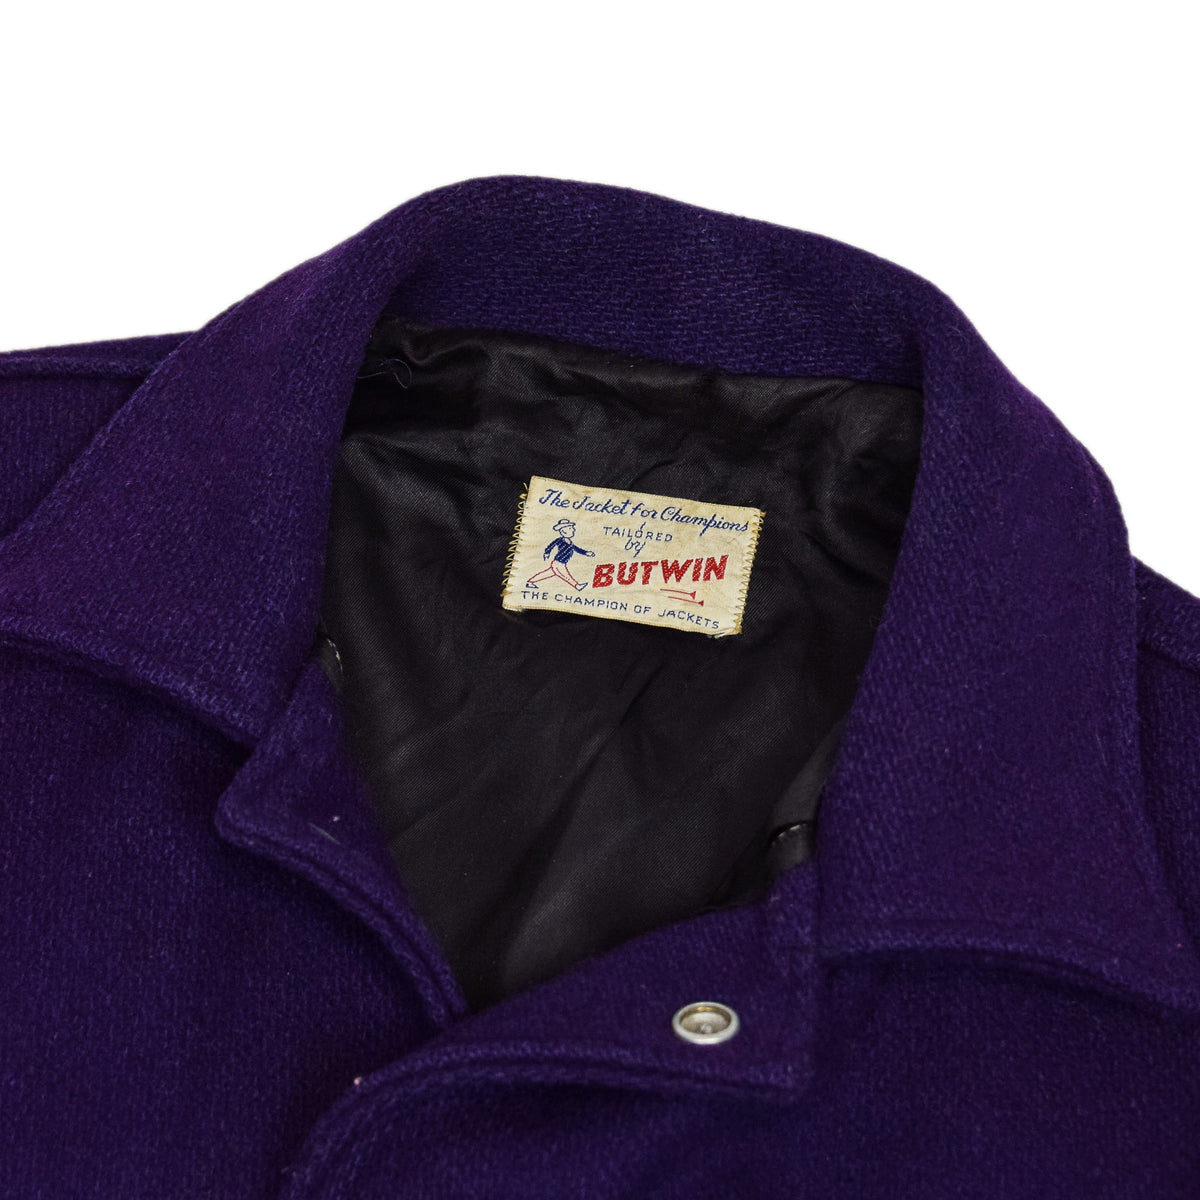 Vintage 60s Butwin Purple Wool Leather Varsity Jacket Lined Made in USA M label